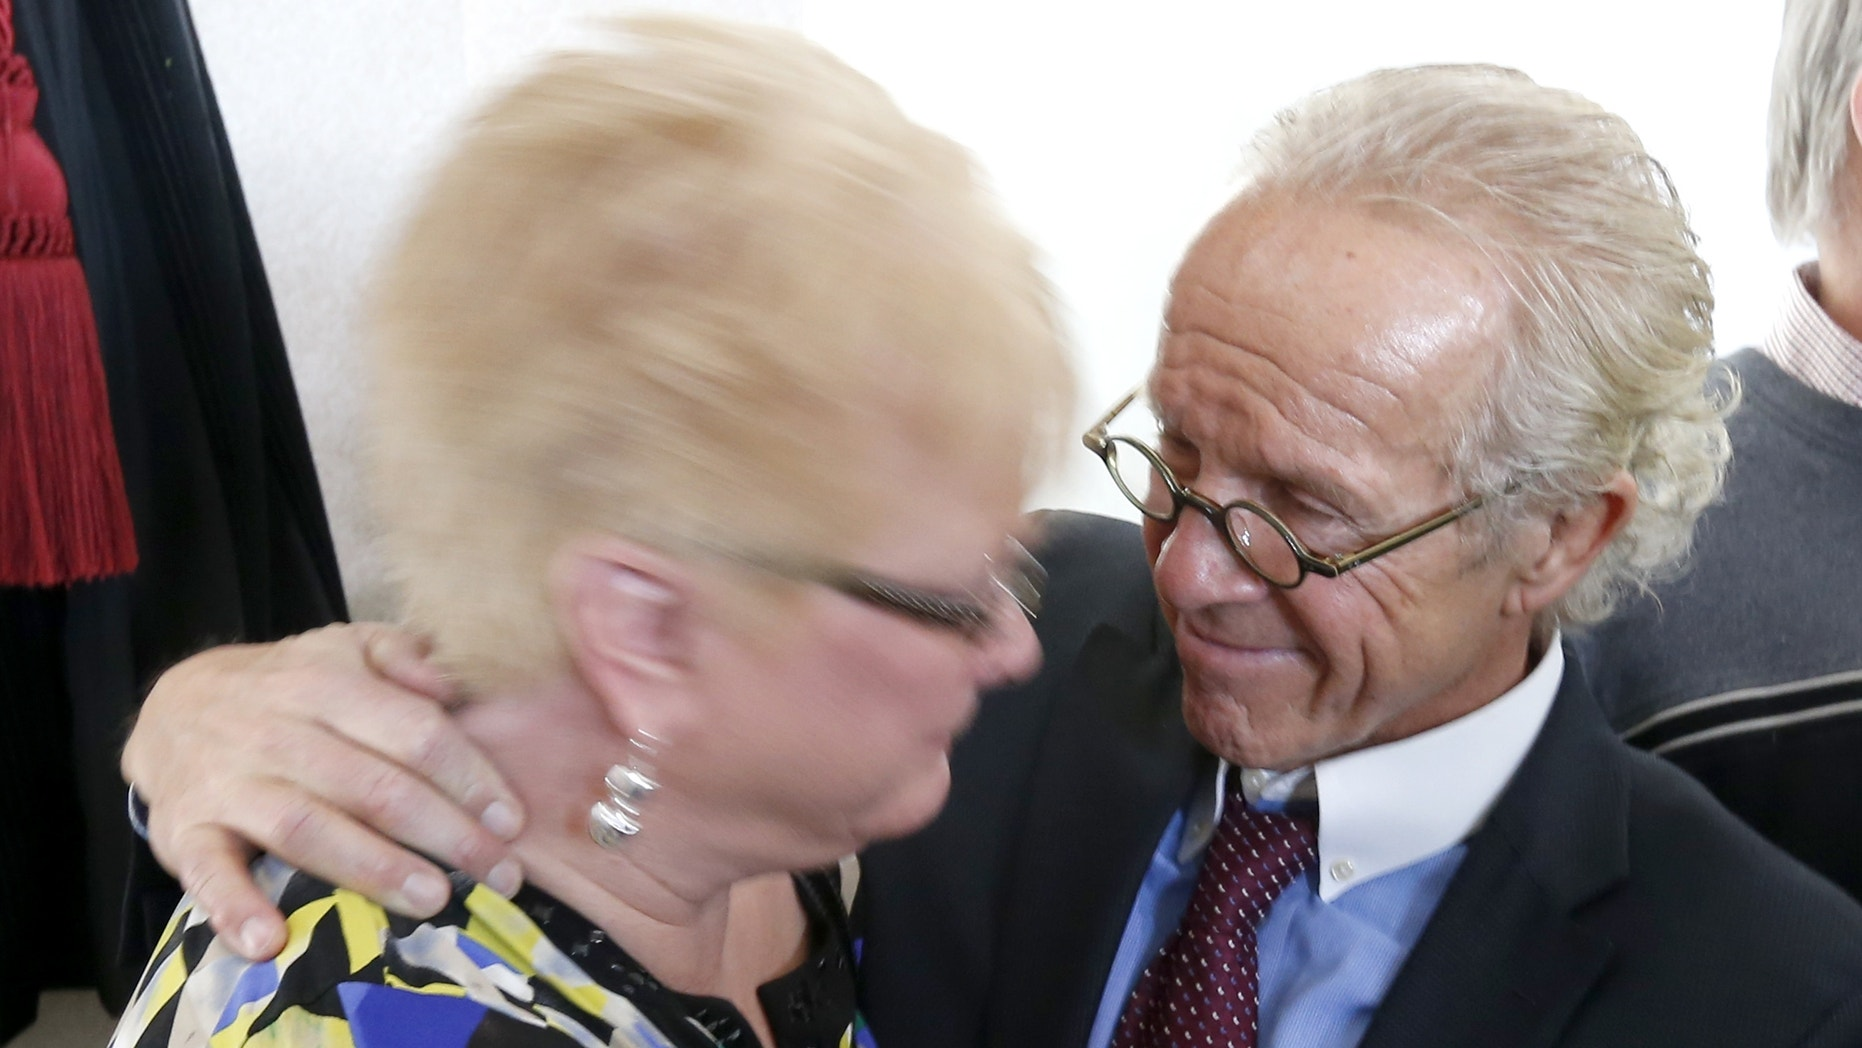 Jan. 21, 2014: Attorney Jeff Anderson, right, smiles after hugging Kathy Laarveld, whose son was sexually abused by a priest, after a news conference on the release of files of Catholic priests credibly accused of sexually abusing minors in the Archdiocese of Chicago, in Chicago.